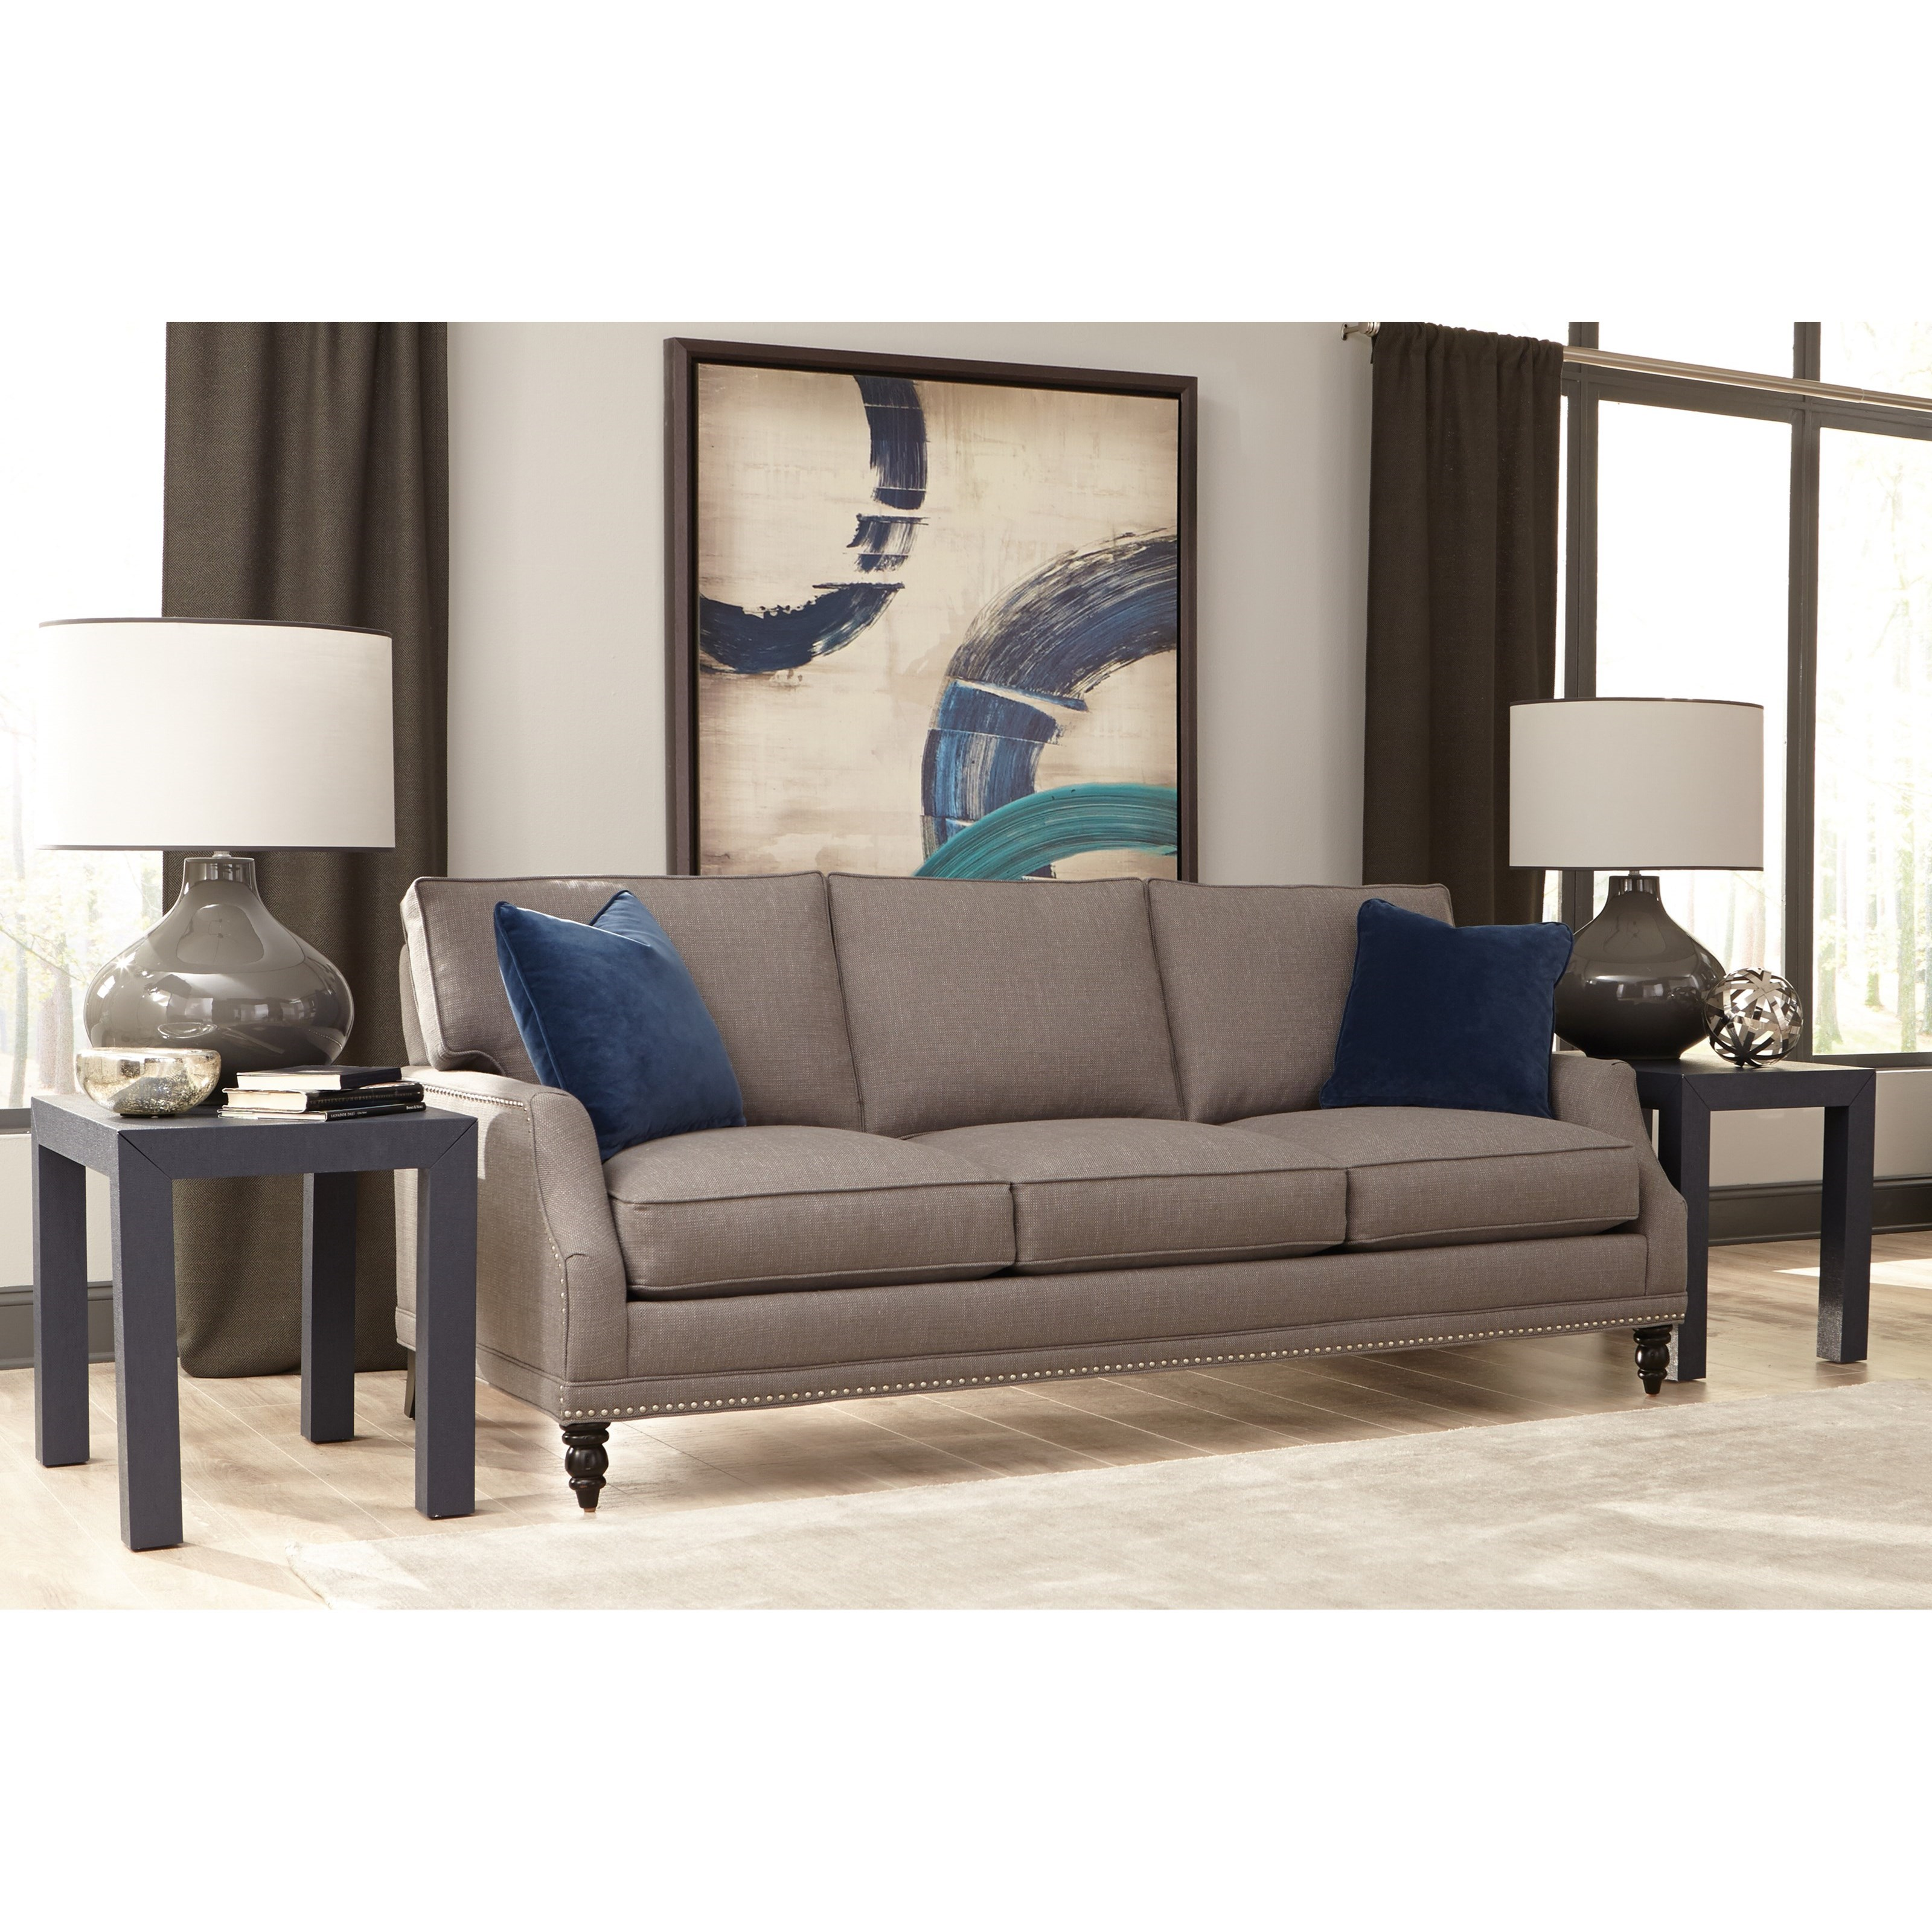 Rowe My Style Ii Customizable Sofa With Scooped Arms